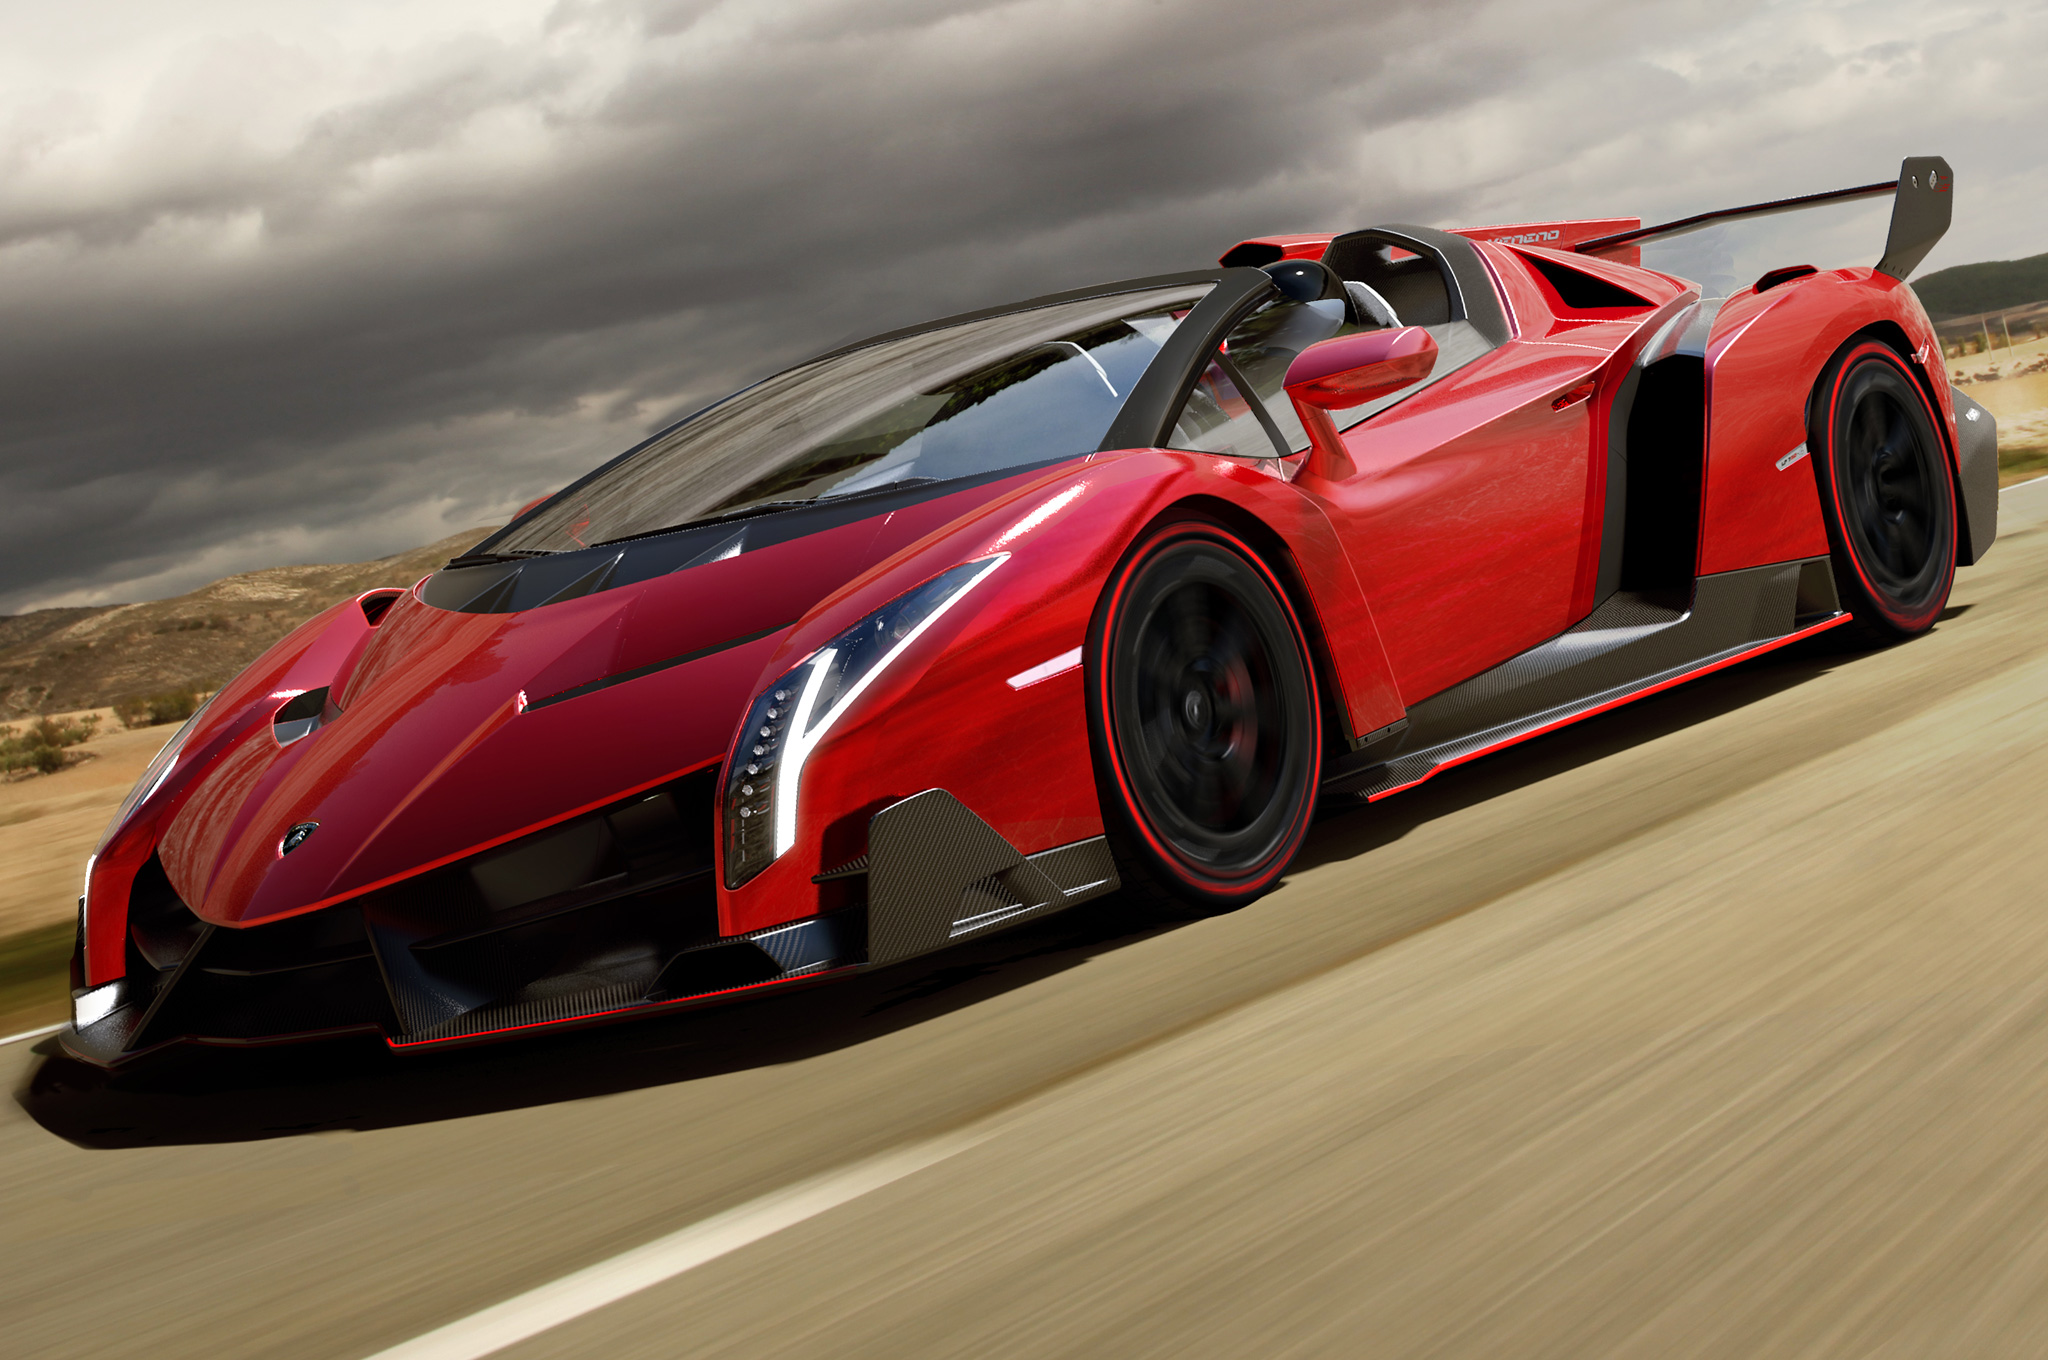 lamborghini-veneno-roadster-front-side-motion-view.jpg